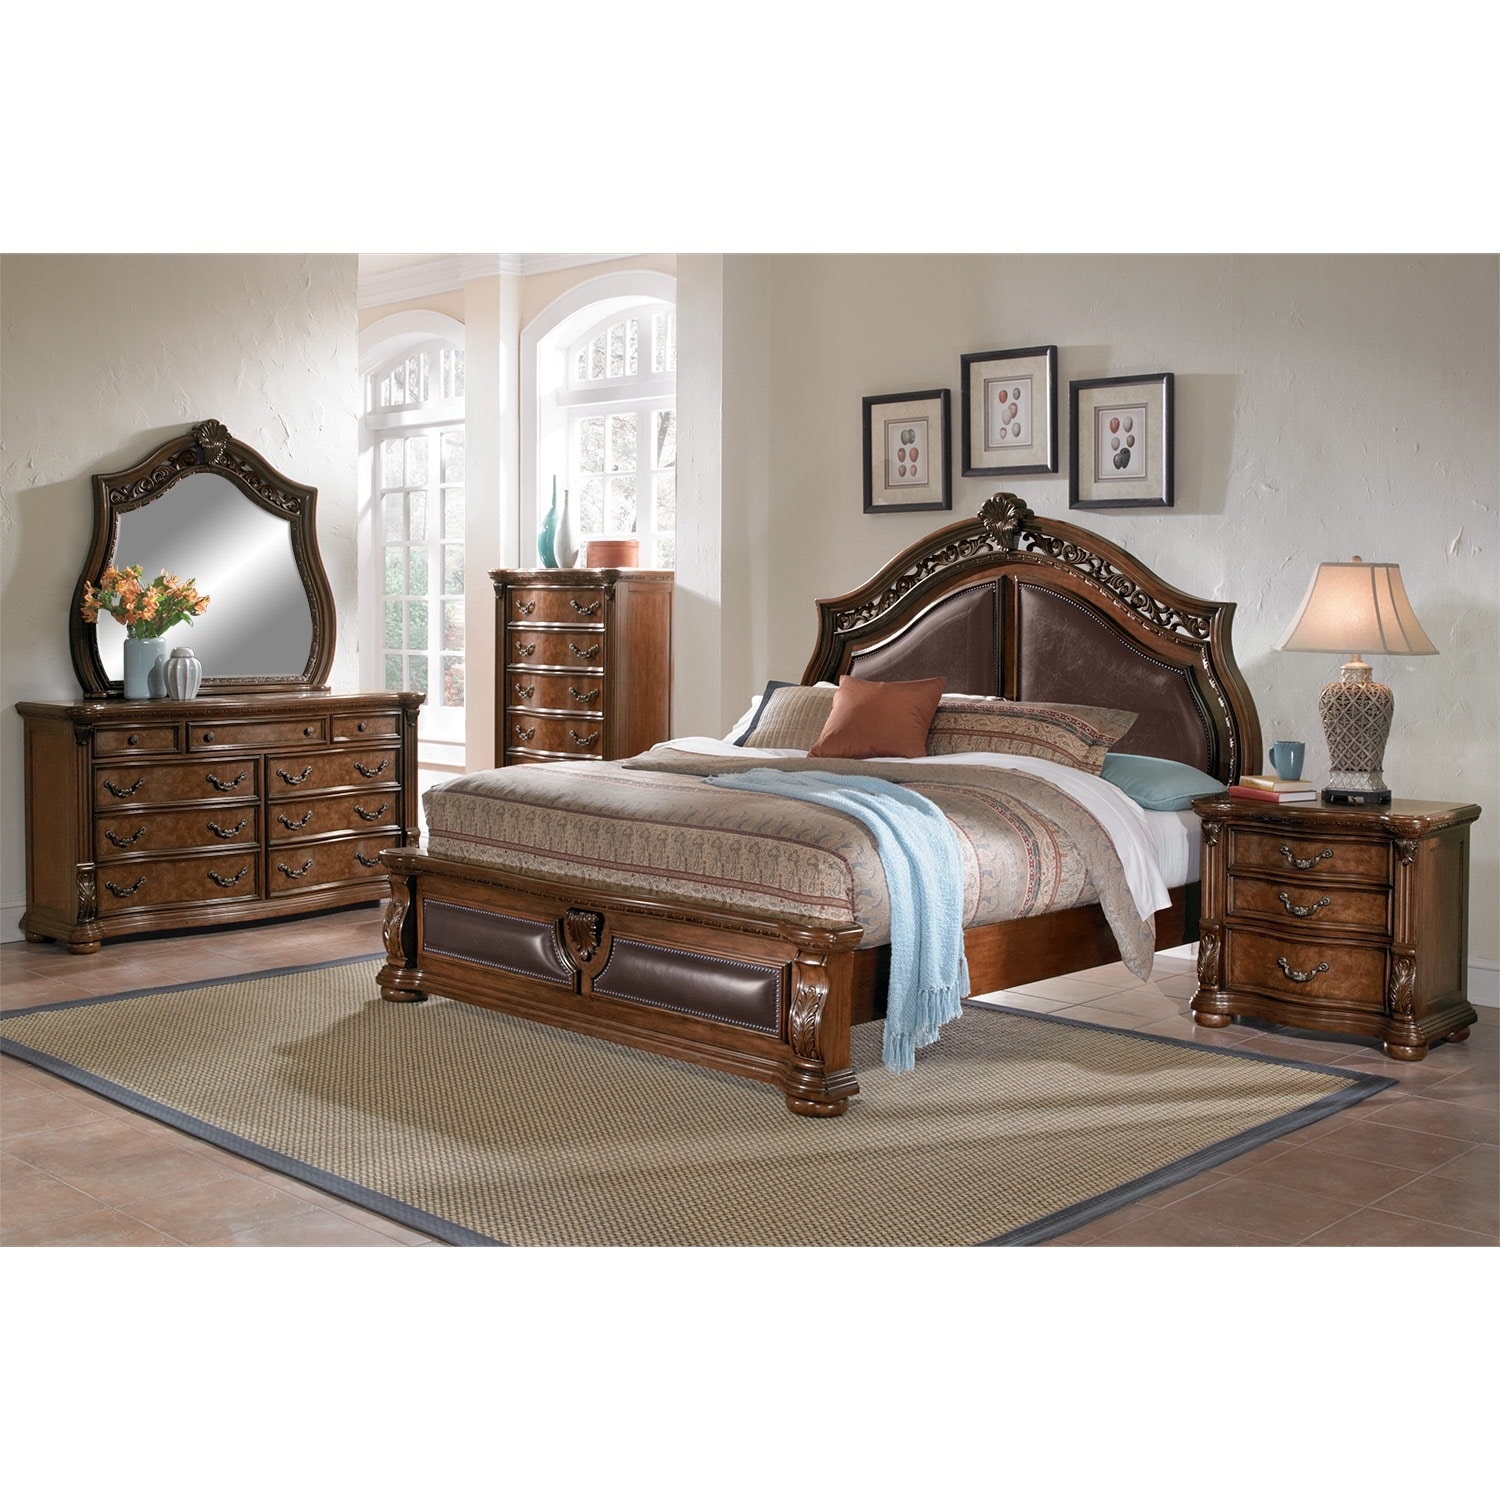 Morocco Queen Bed  Pecan  Value City Furniture